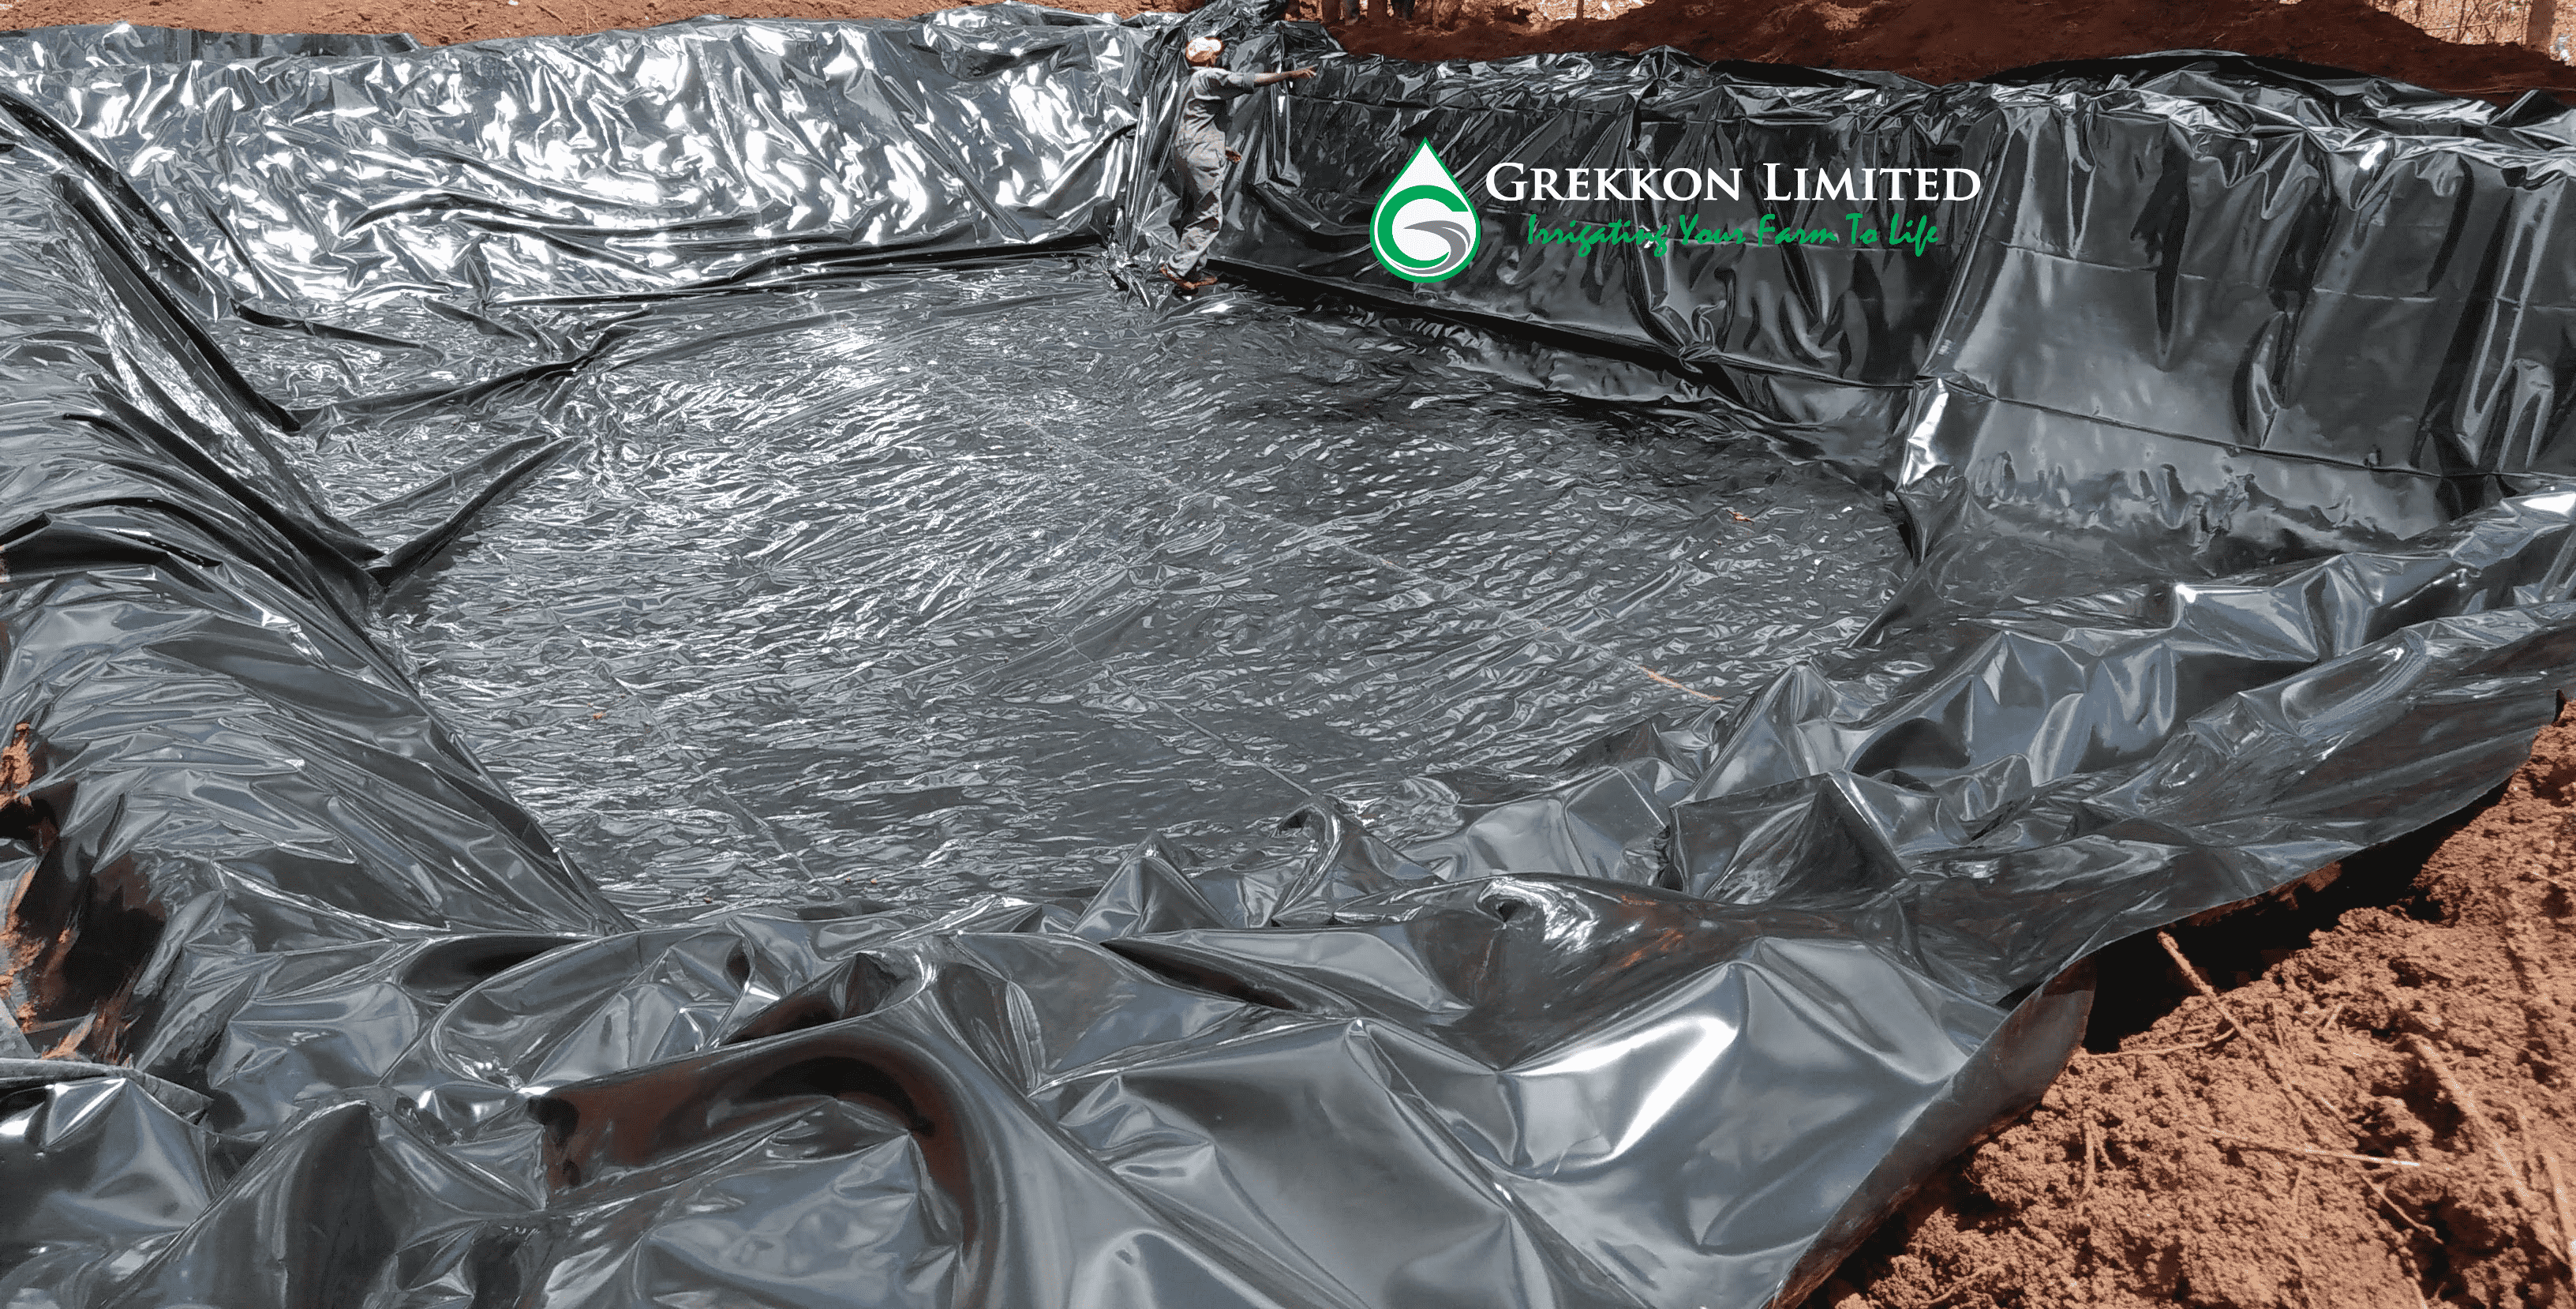 Fish pond liners by Grekkon Limited